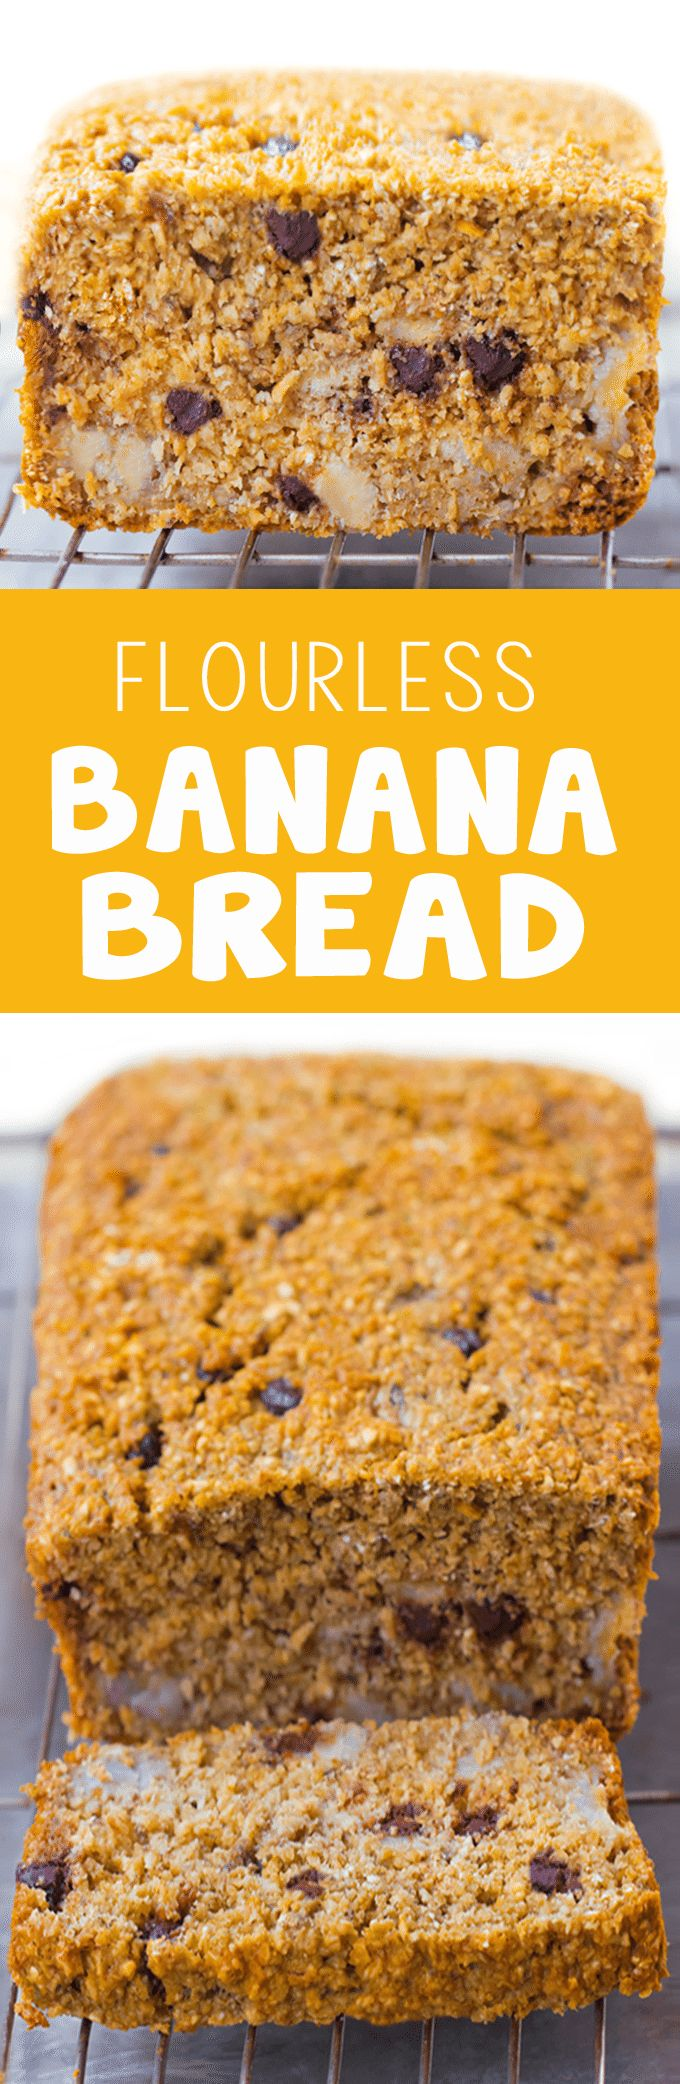 Flourless Banana Bread - 2 cups mashed banana, 1 cup oats, 1/2 tsp baking soda, 3 cups... http://chocolatecoveredkatie.com/2015/09/28/flourless-banana-bread-recipe/ @choccoveredkt